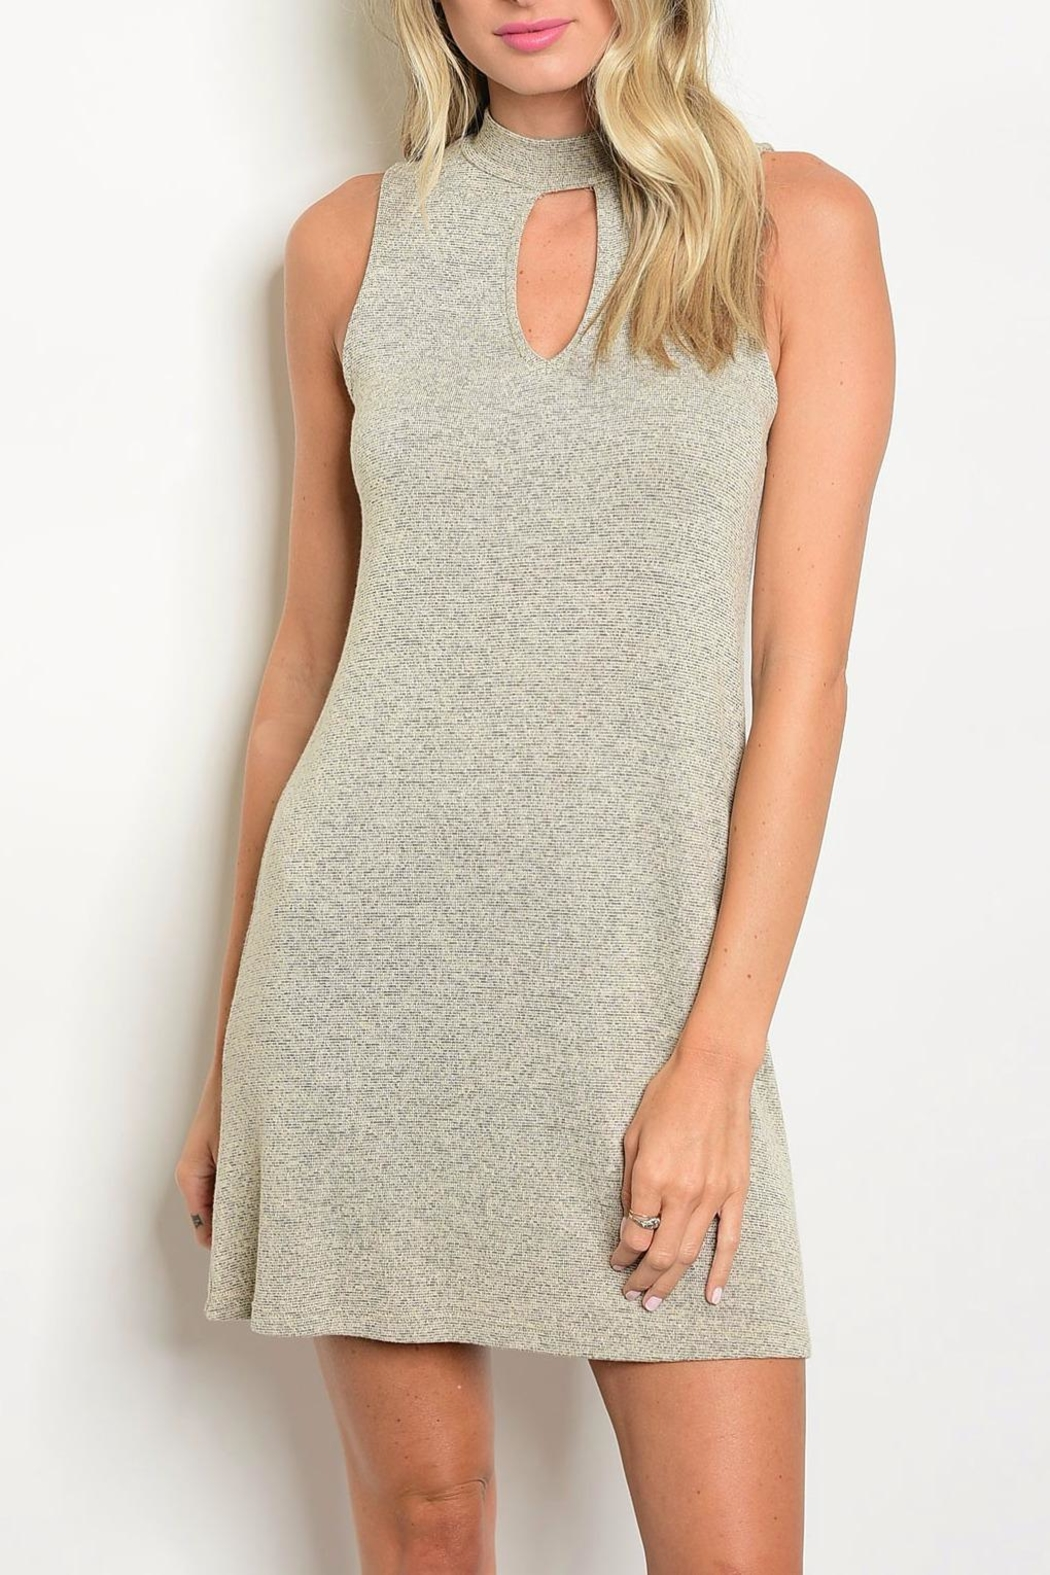 In Style Taupe Mock Neck Dress - Main Image